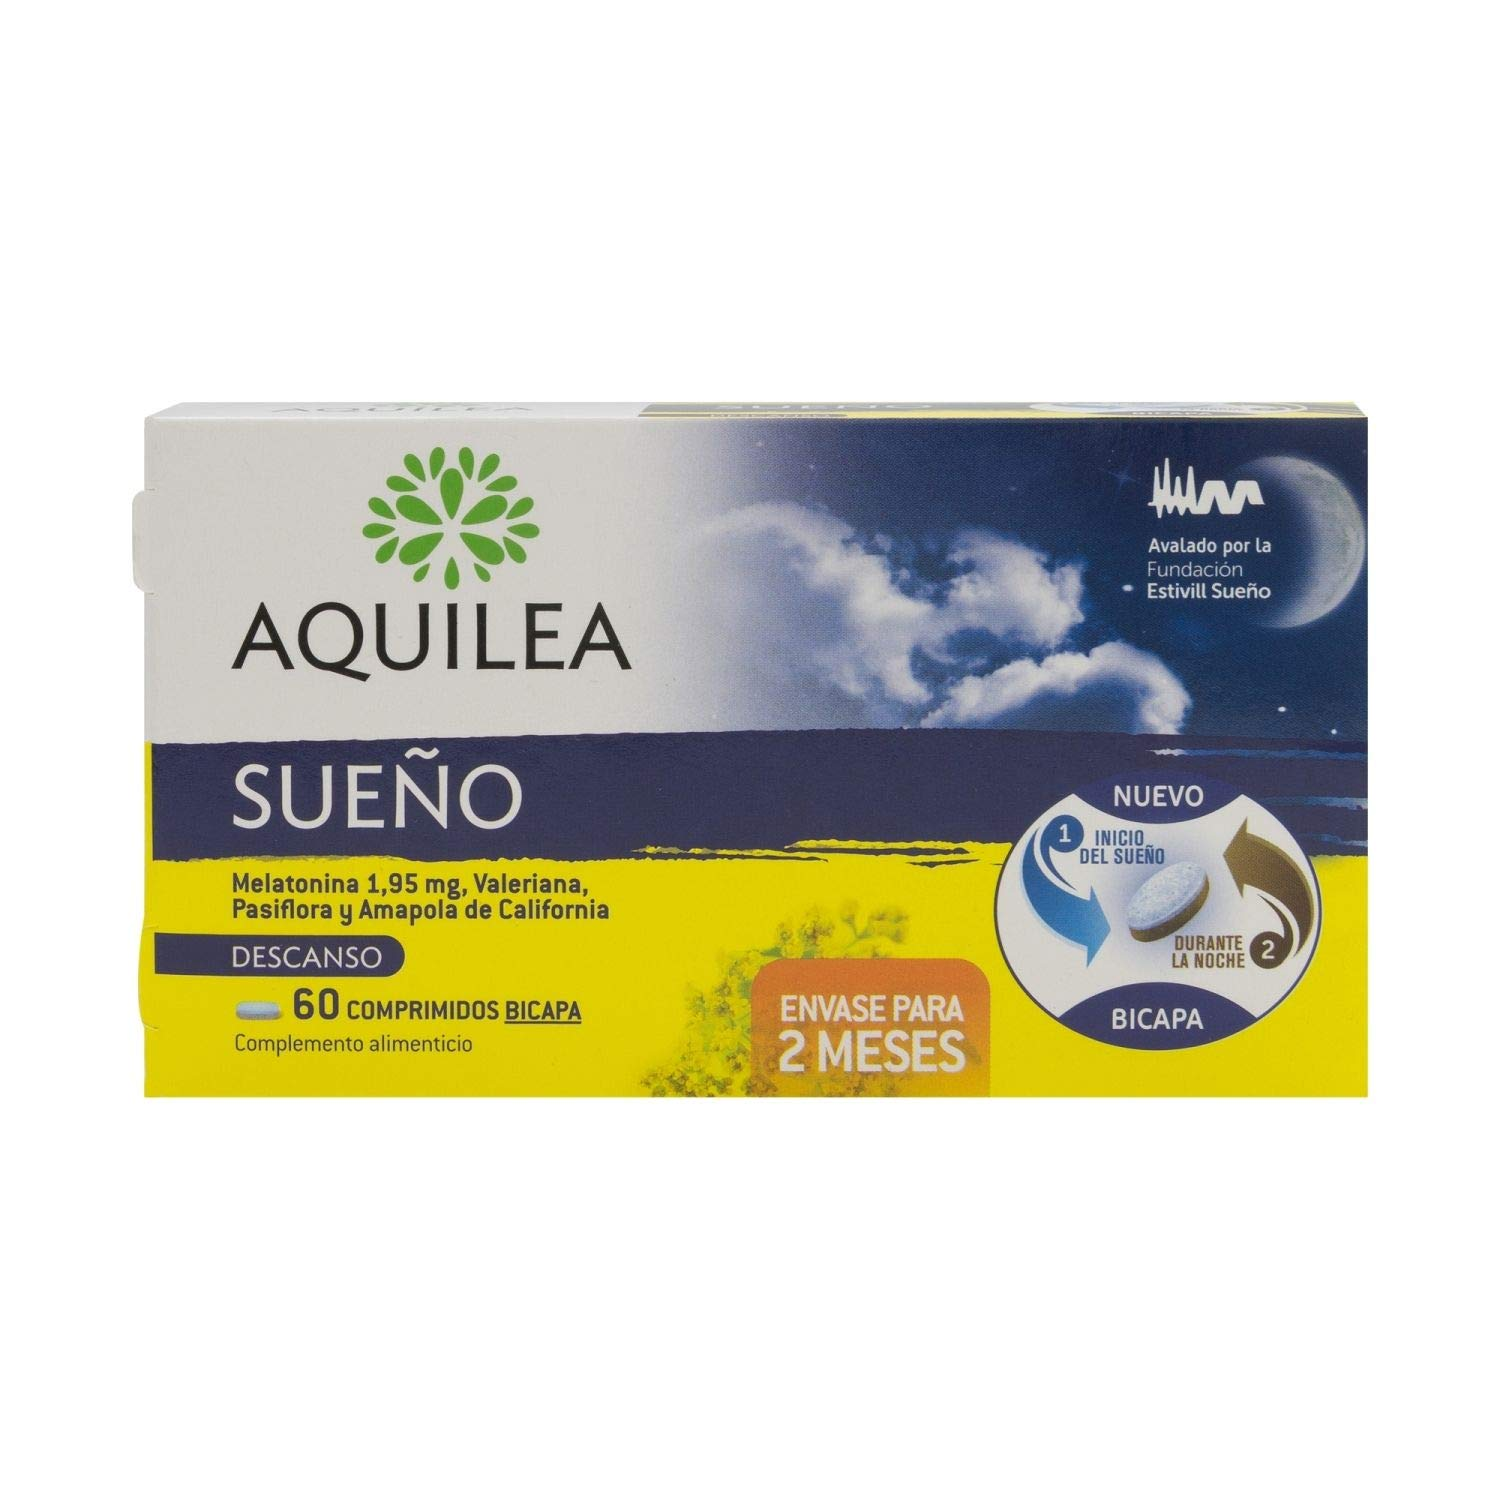 Amazon.com: Aquilea Sleep 60 tabs - Gluten-Free All-Natural Tabs - Rest All Night and Relax - Combat Insomnia - Melatonin, Valerian, California Poppy ...